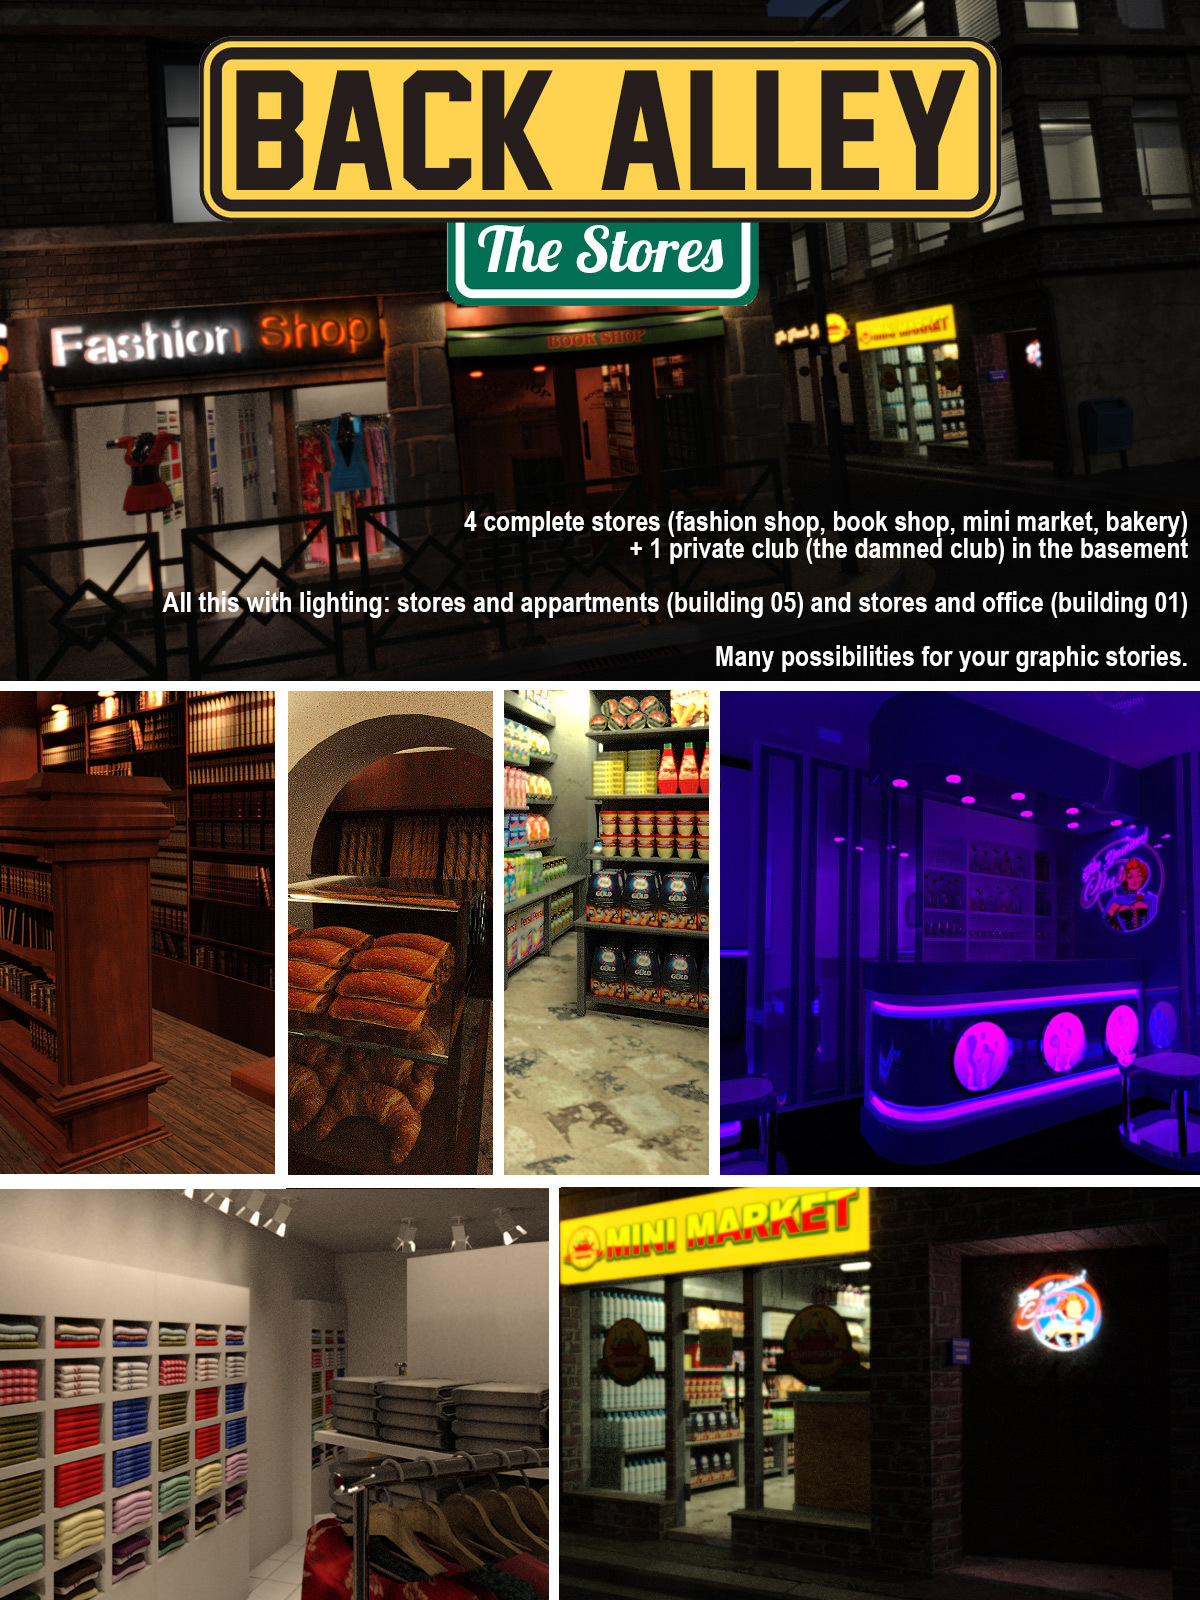 Back Alley The Stores for DS Iray - Extended License by powerage